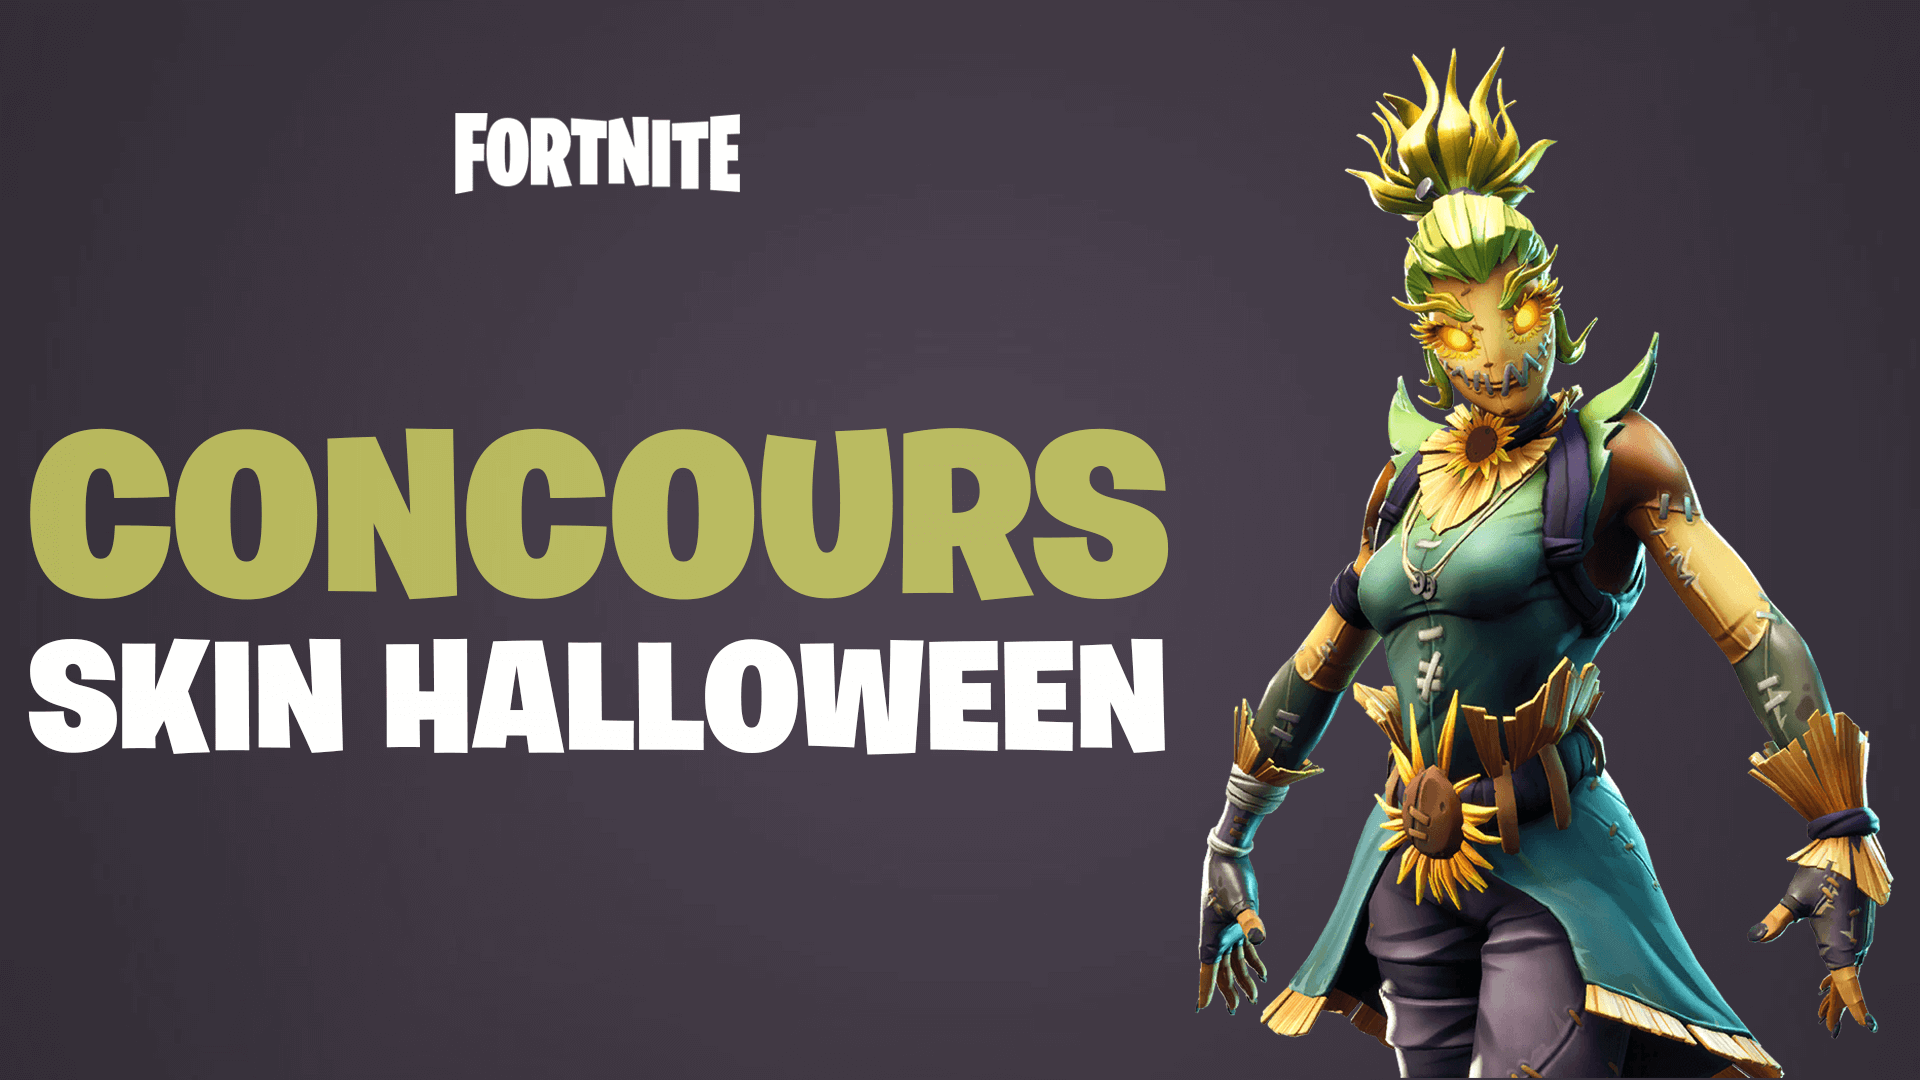 Concours_halloween_1920x1080.png